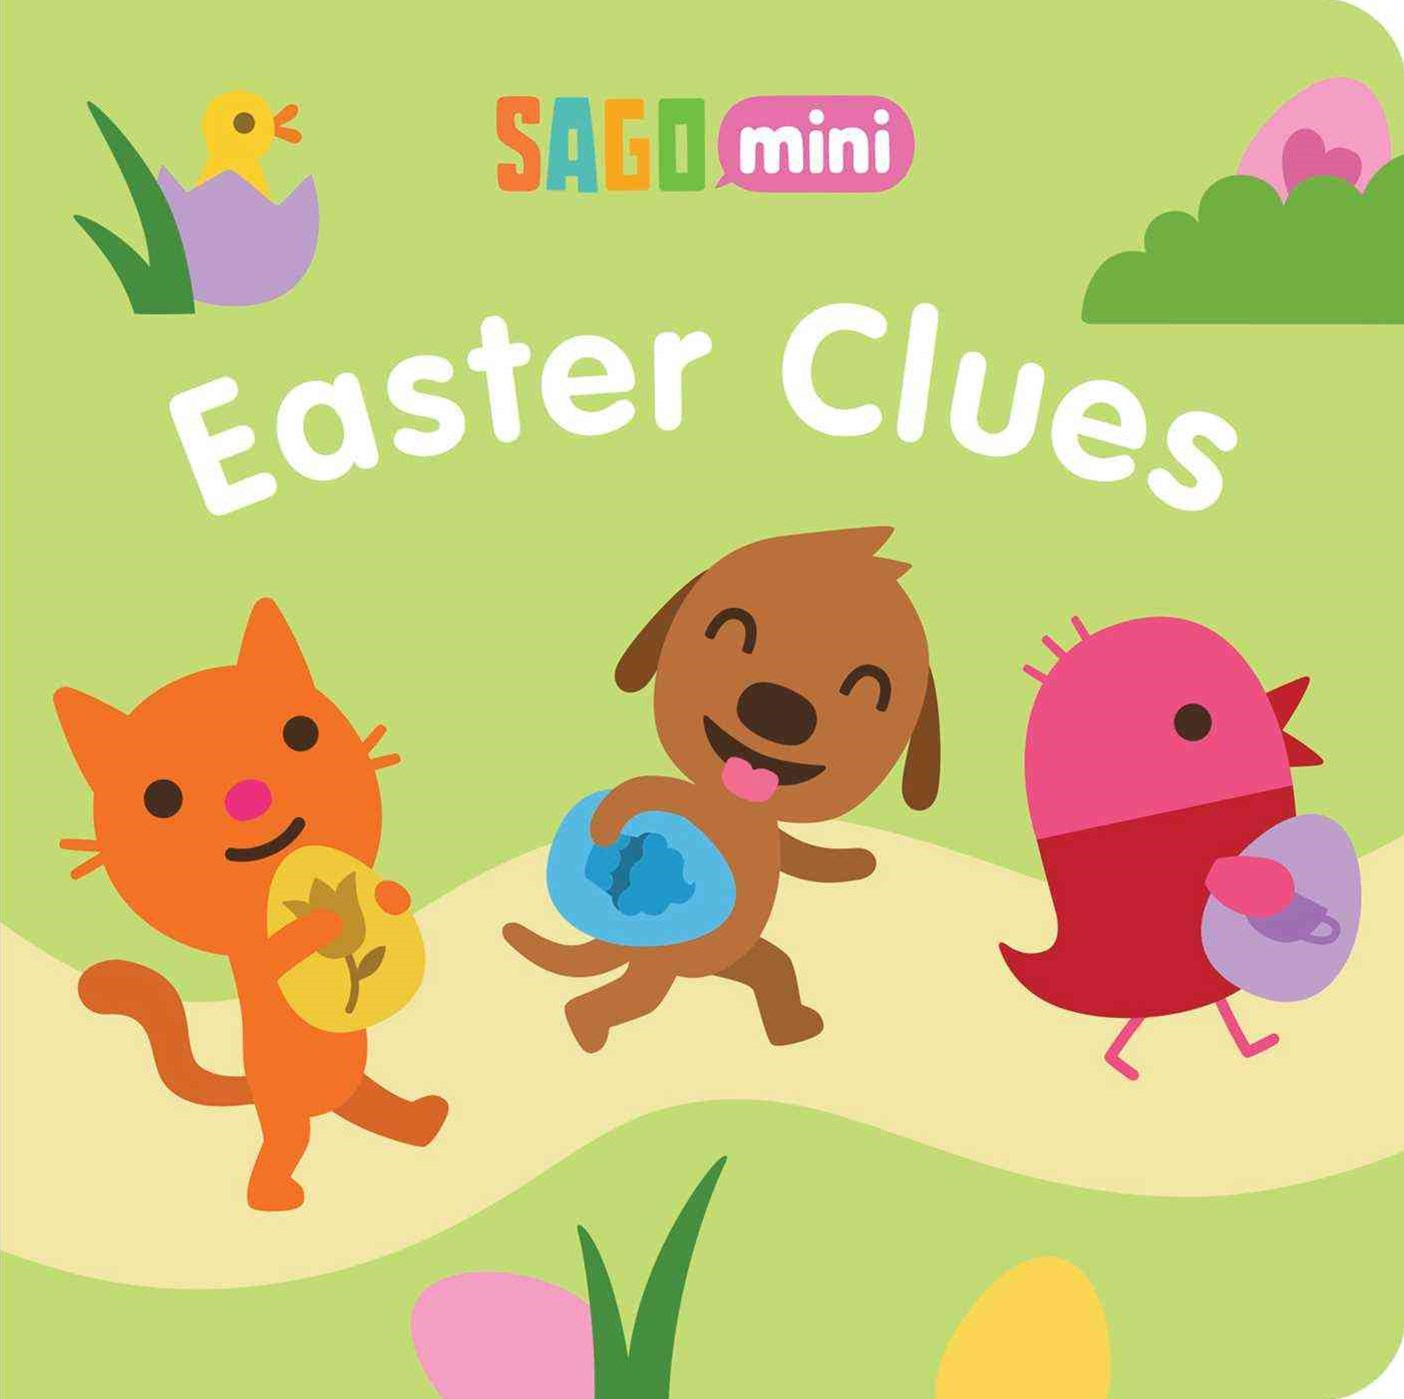 Easter Clues